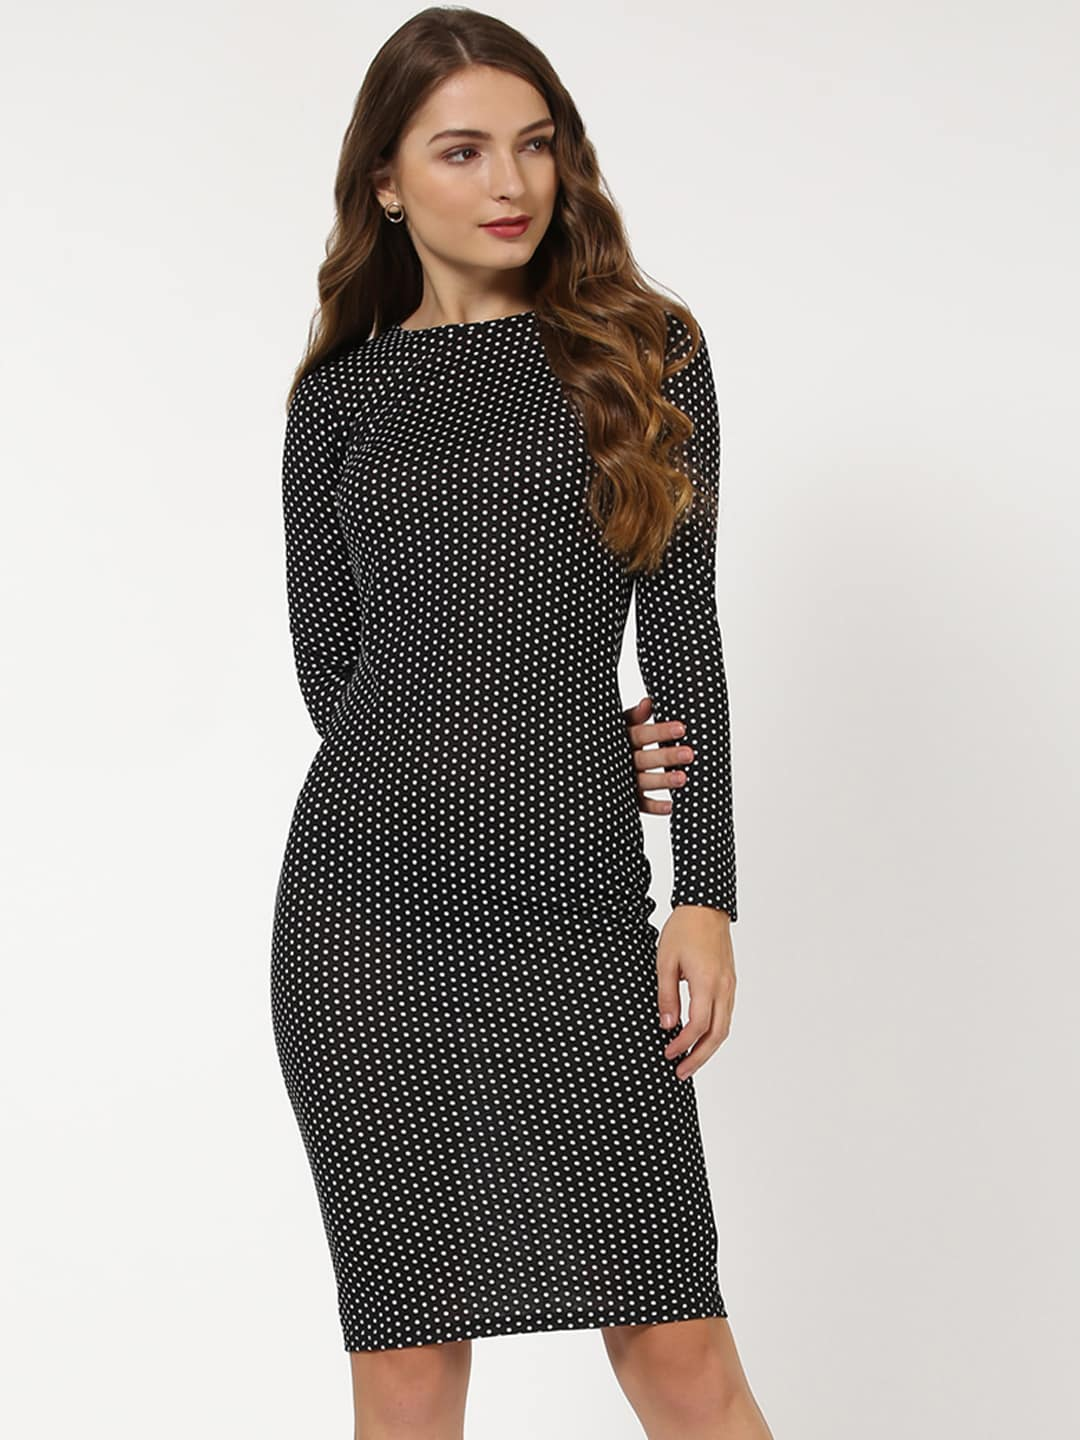 e685ba44fc Bodycon Dress Dresses - Buy Bodycon Dress Dresses online in India